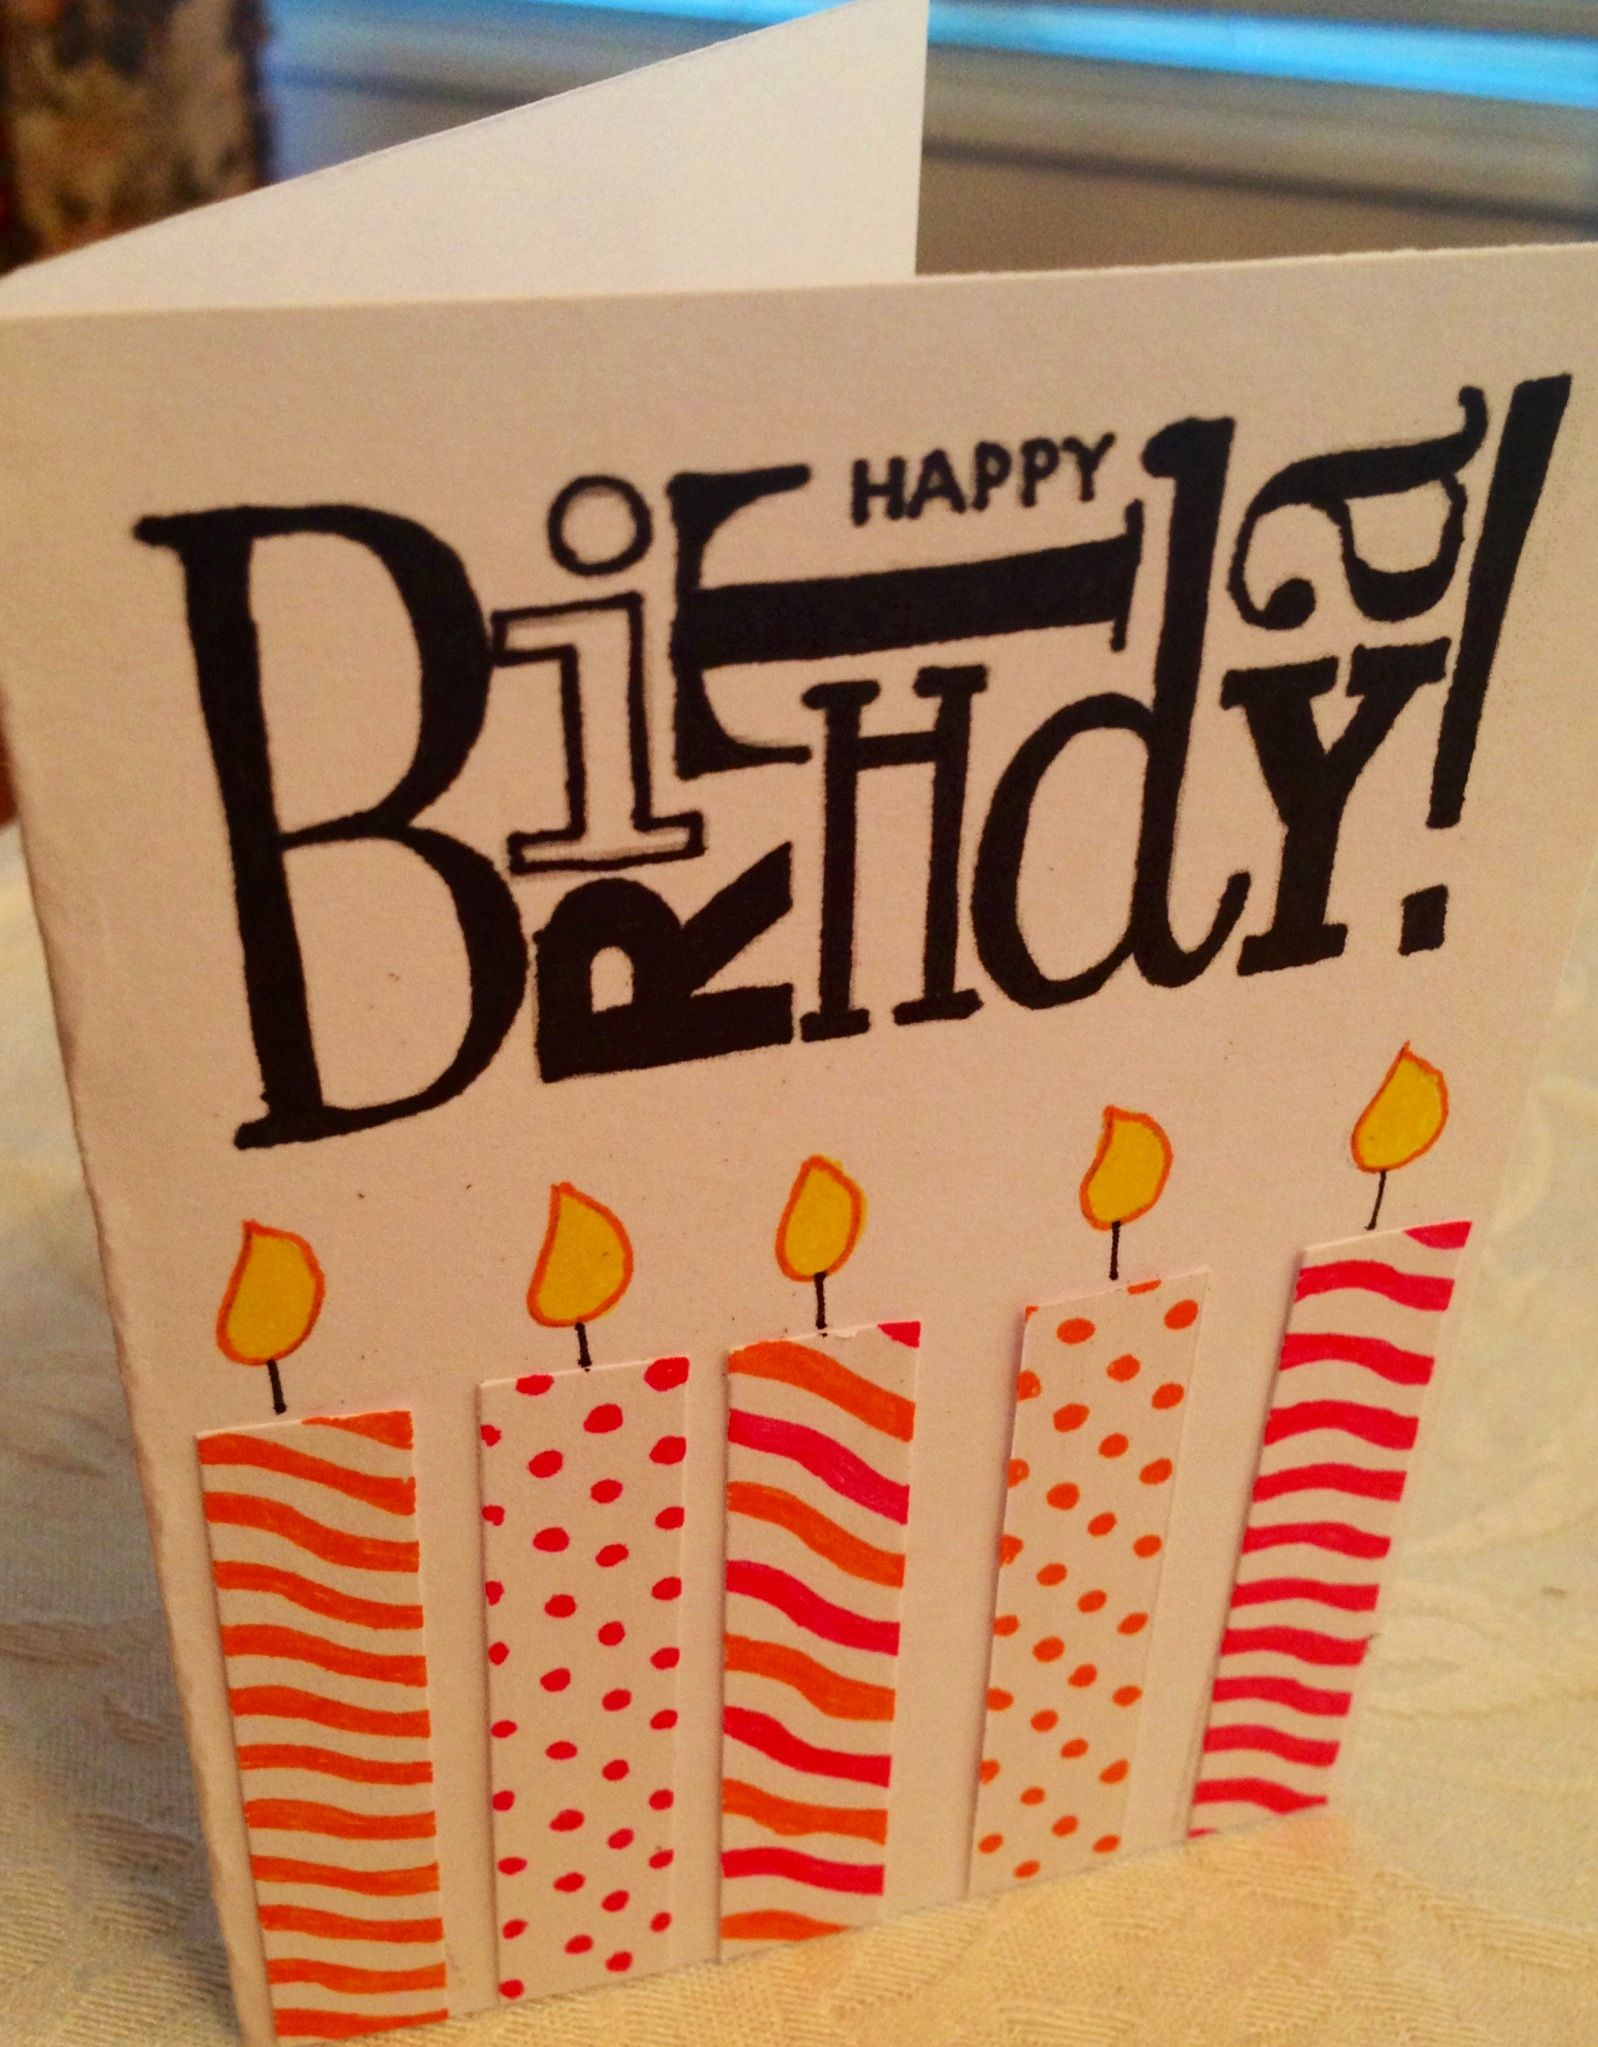 Easy homemade birthday card birthdays pinterest homemade easy homemade birthday card creative birthday cardshomemade kristyandbryce Images